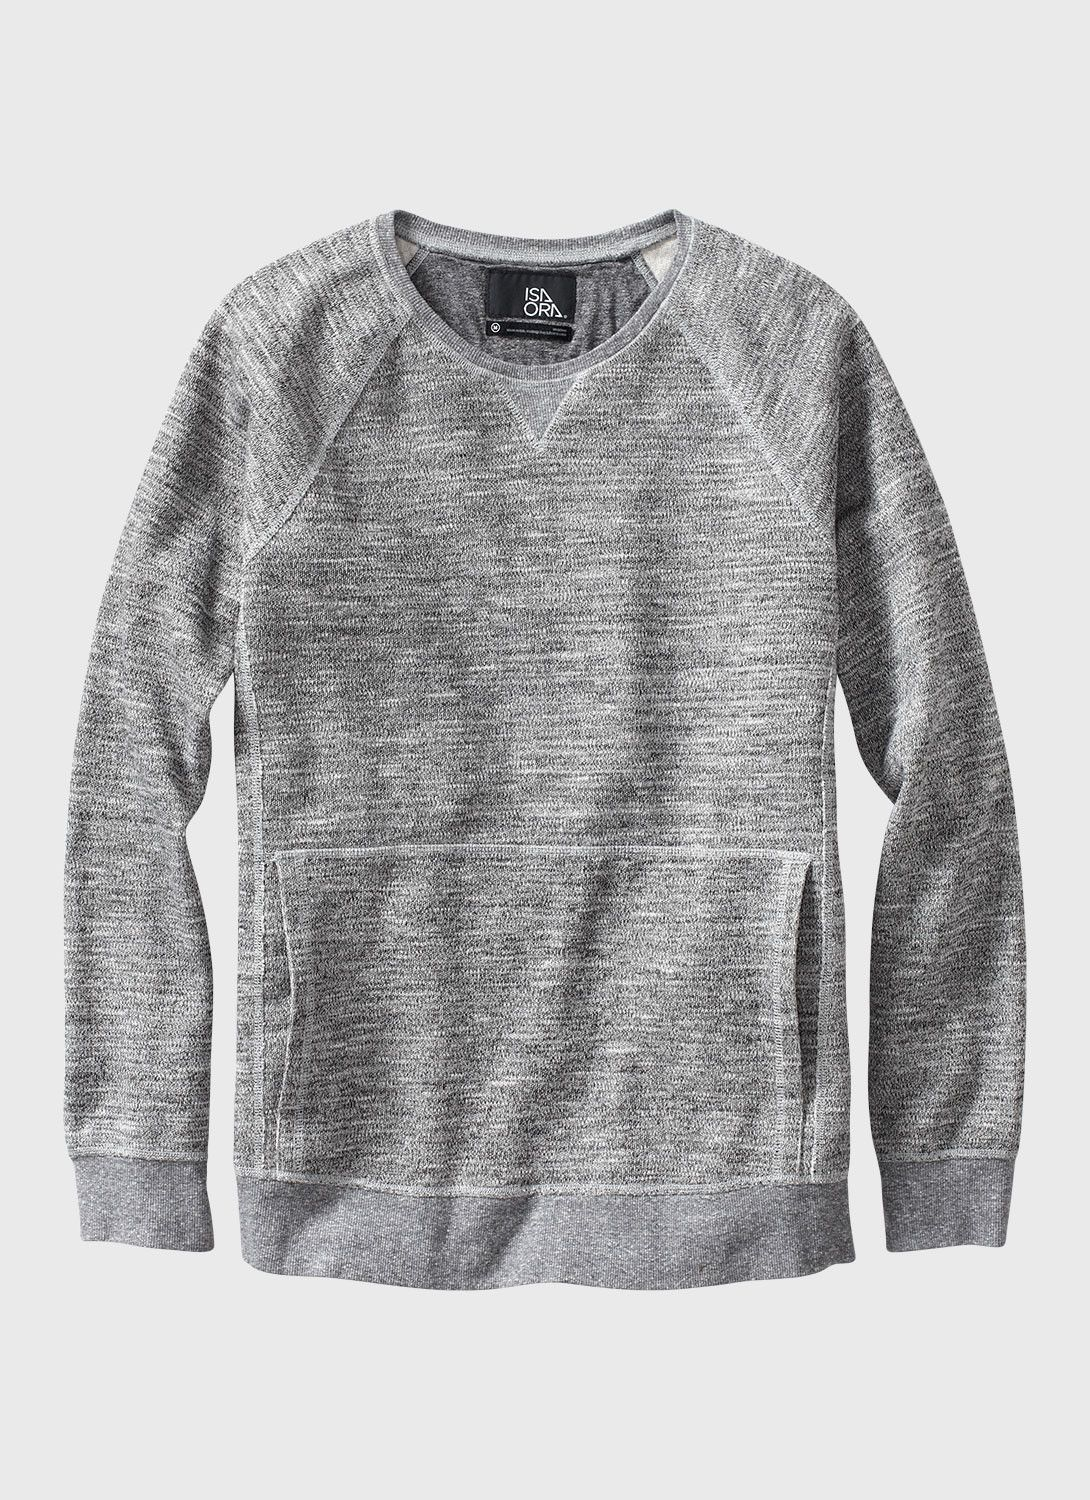 Crewneck Sweatshirt With Pocket | Fashion Ql